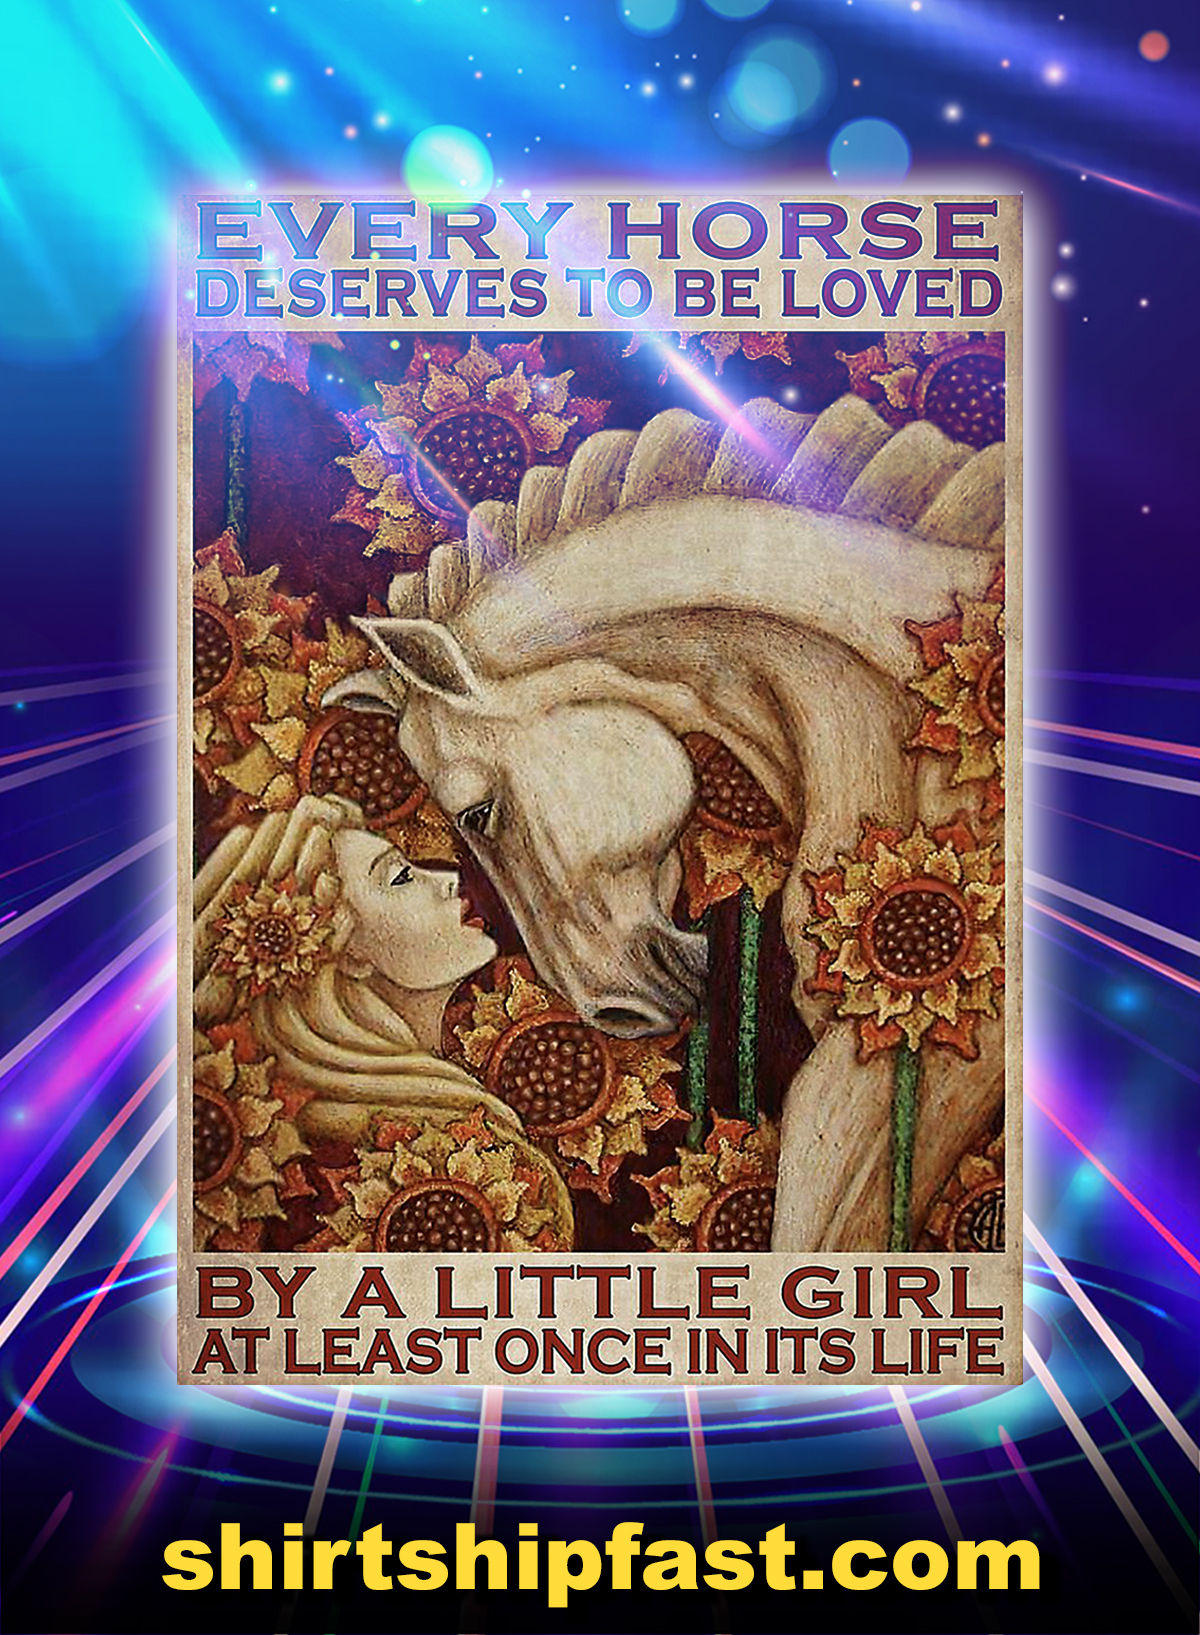 Every horse deserves to be loved by a little girl poster - A4